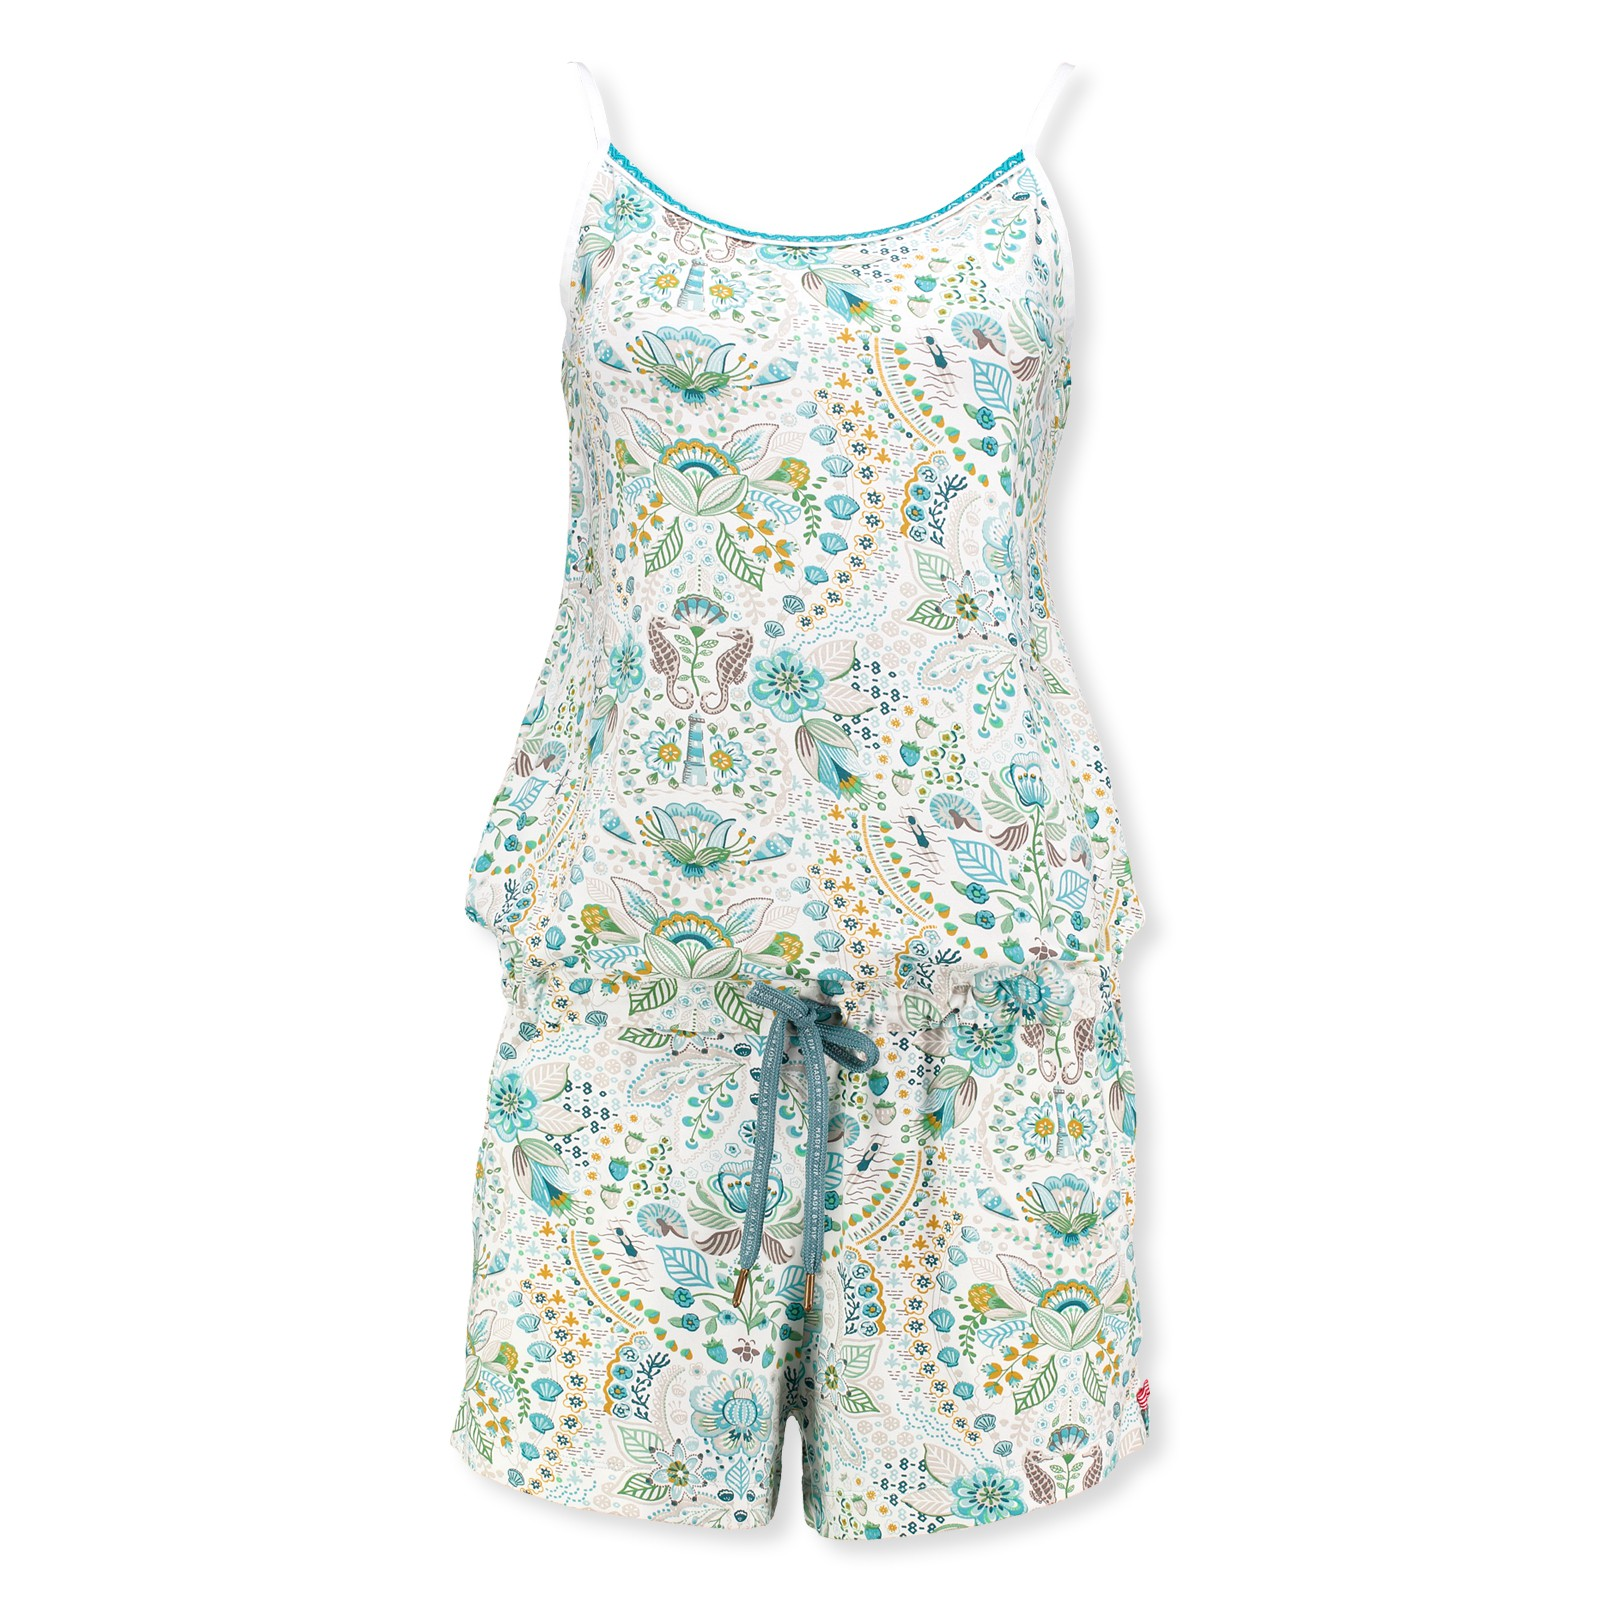 PiP Studio Damen Playsuit Spaghettiträger Short Jumpsuit Overall Sea Stitch S M L 260546 in blue